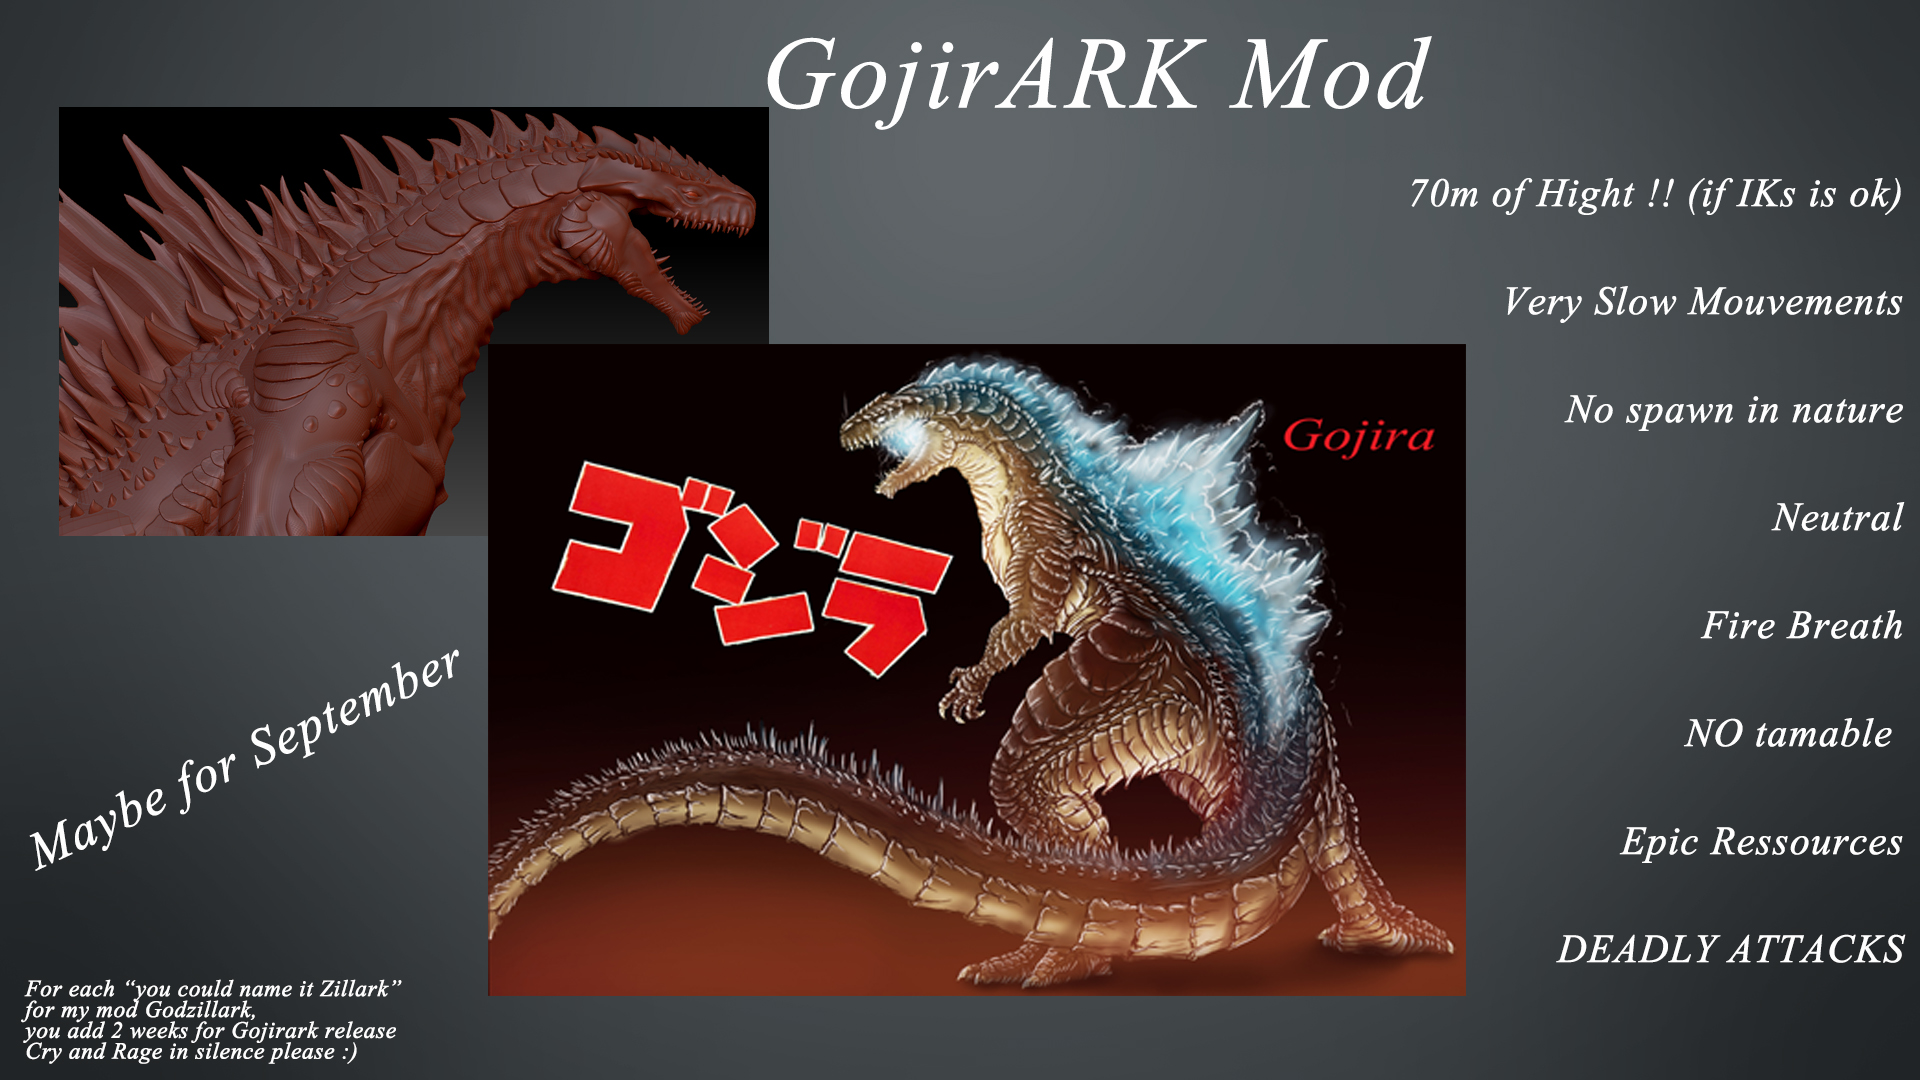 Godzilla mod page? :: ARK: Survival Evolved General Discussions